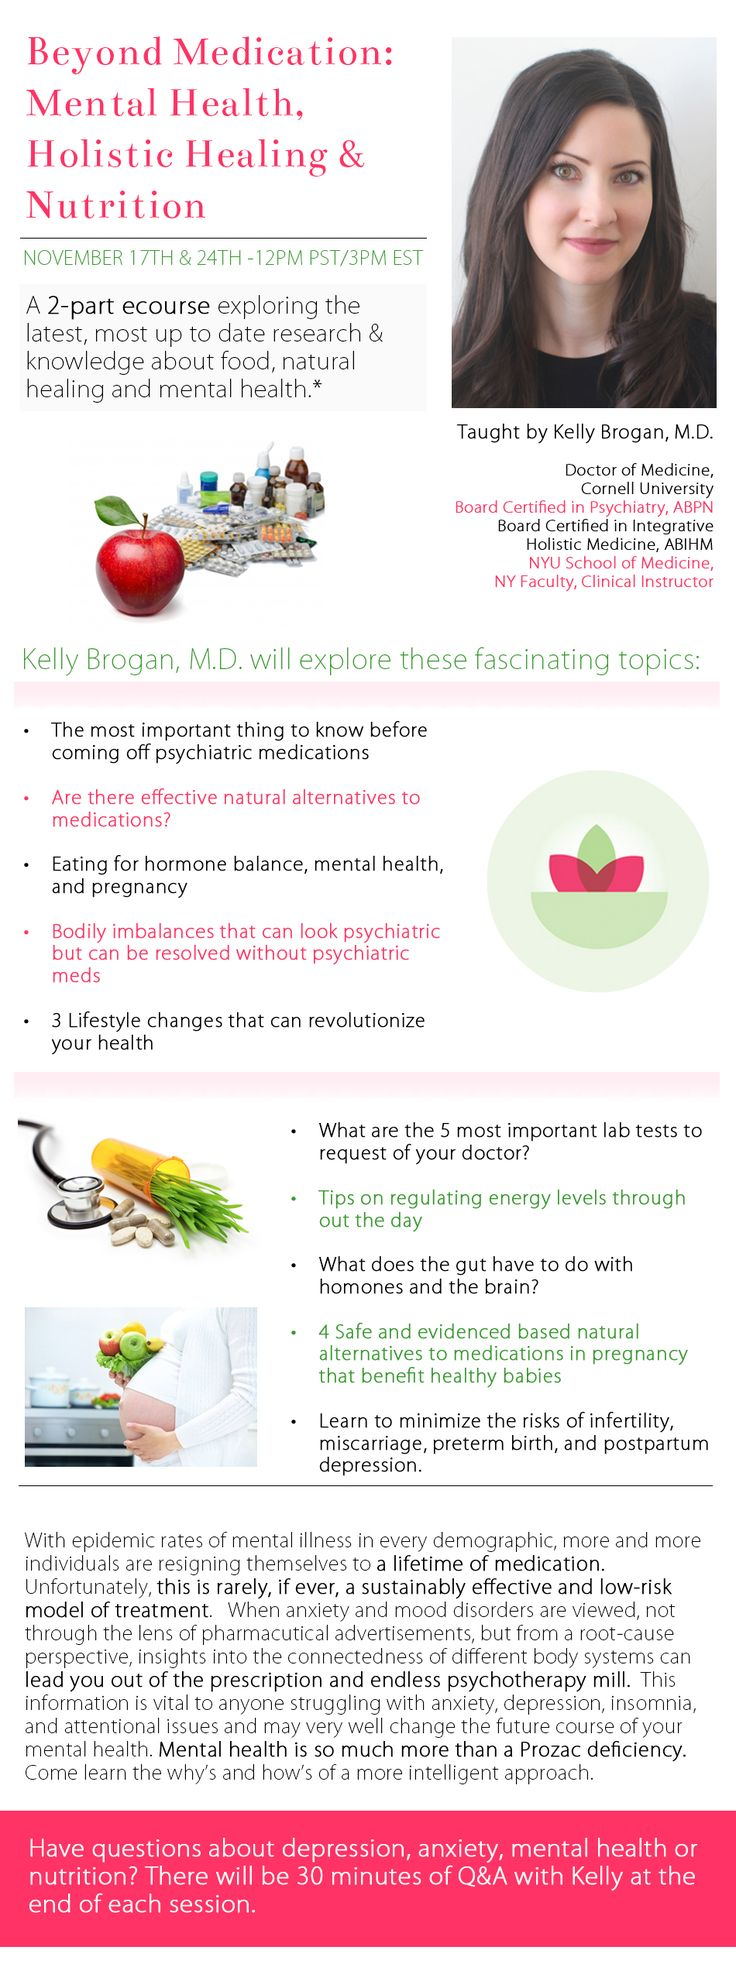 Beyond Medication: Mental Health, Holistic Healing & Nutrition